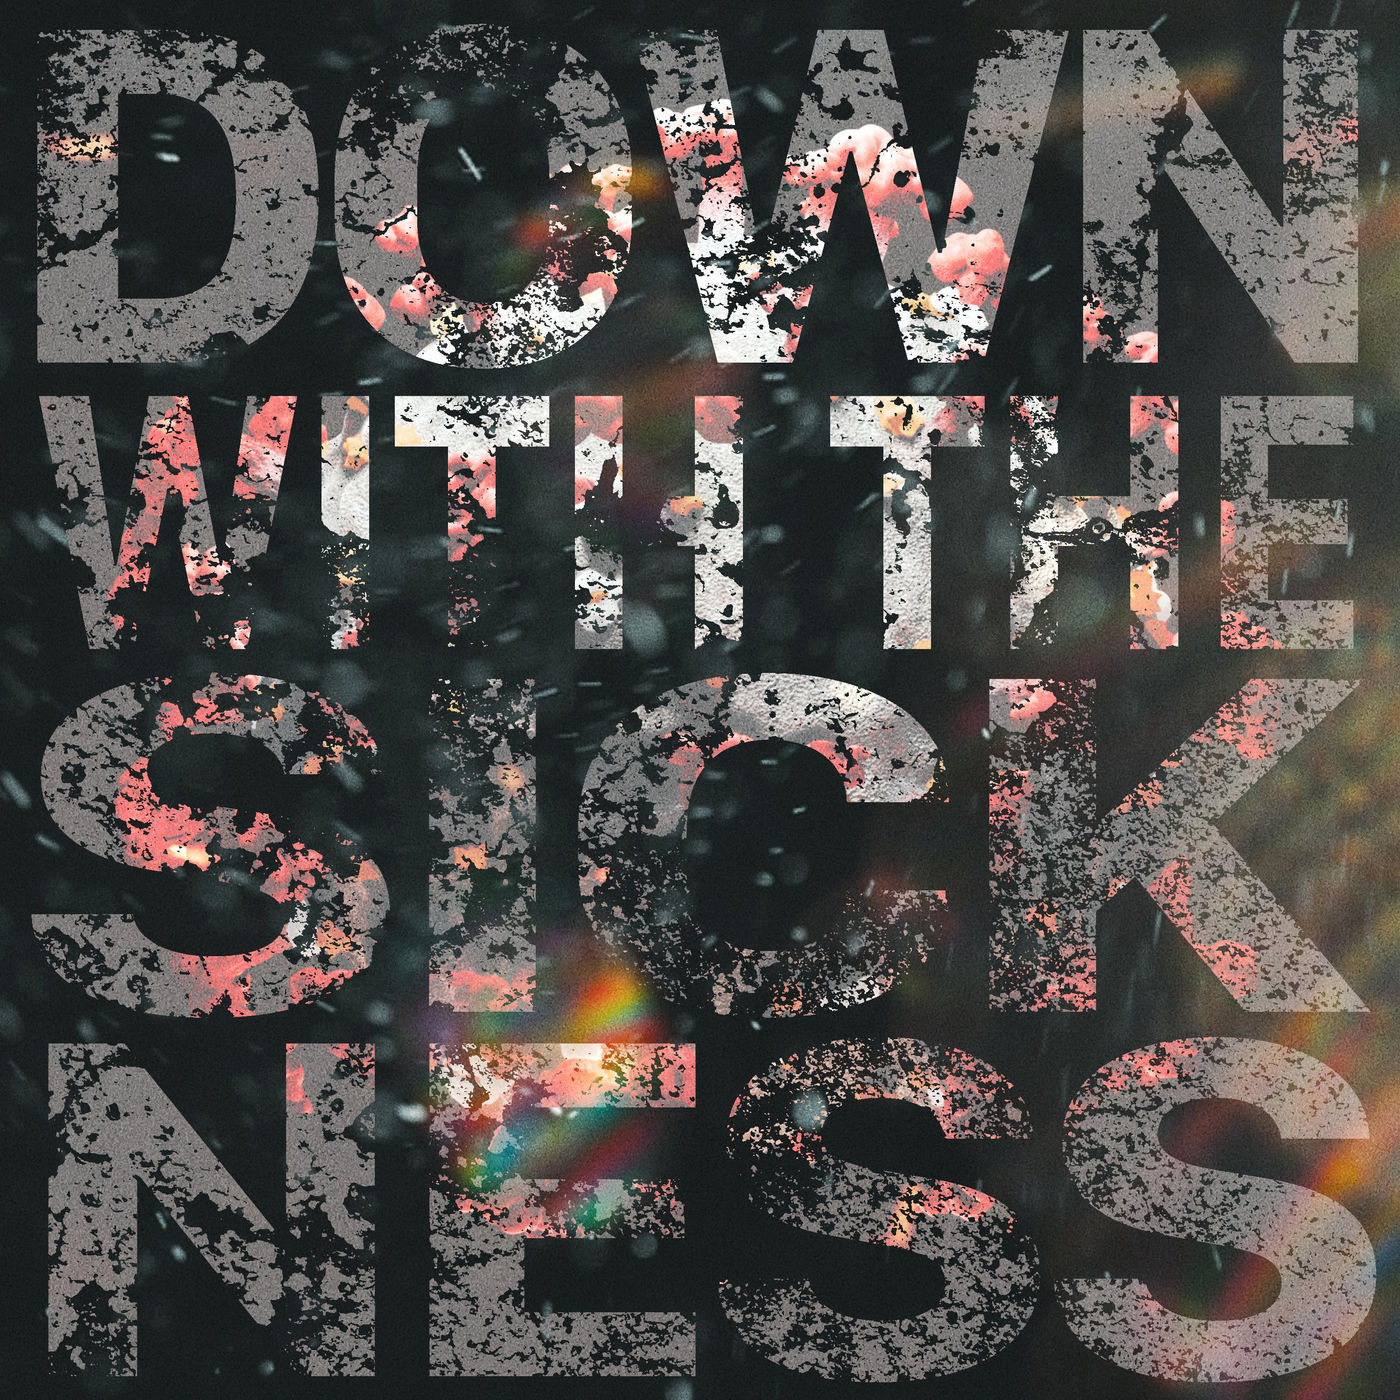 Drewsif Stalin's Musical Endeavors - Down With the Sickness [single] (2020)